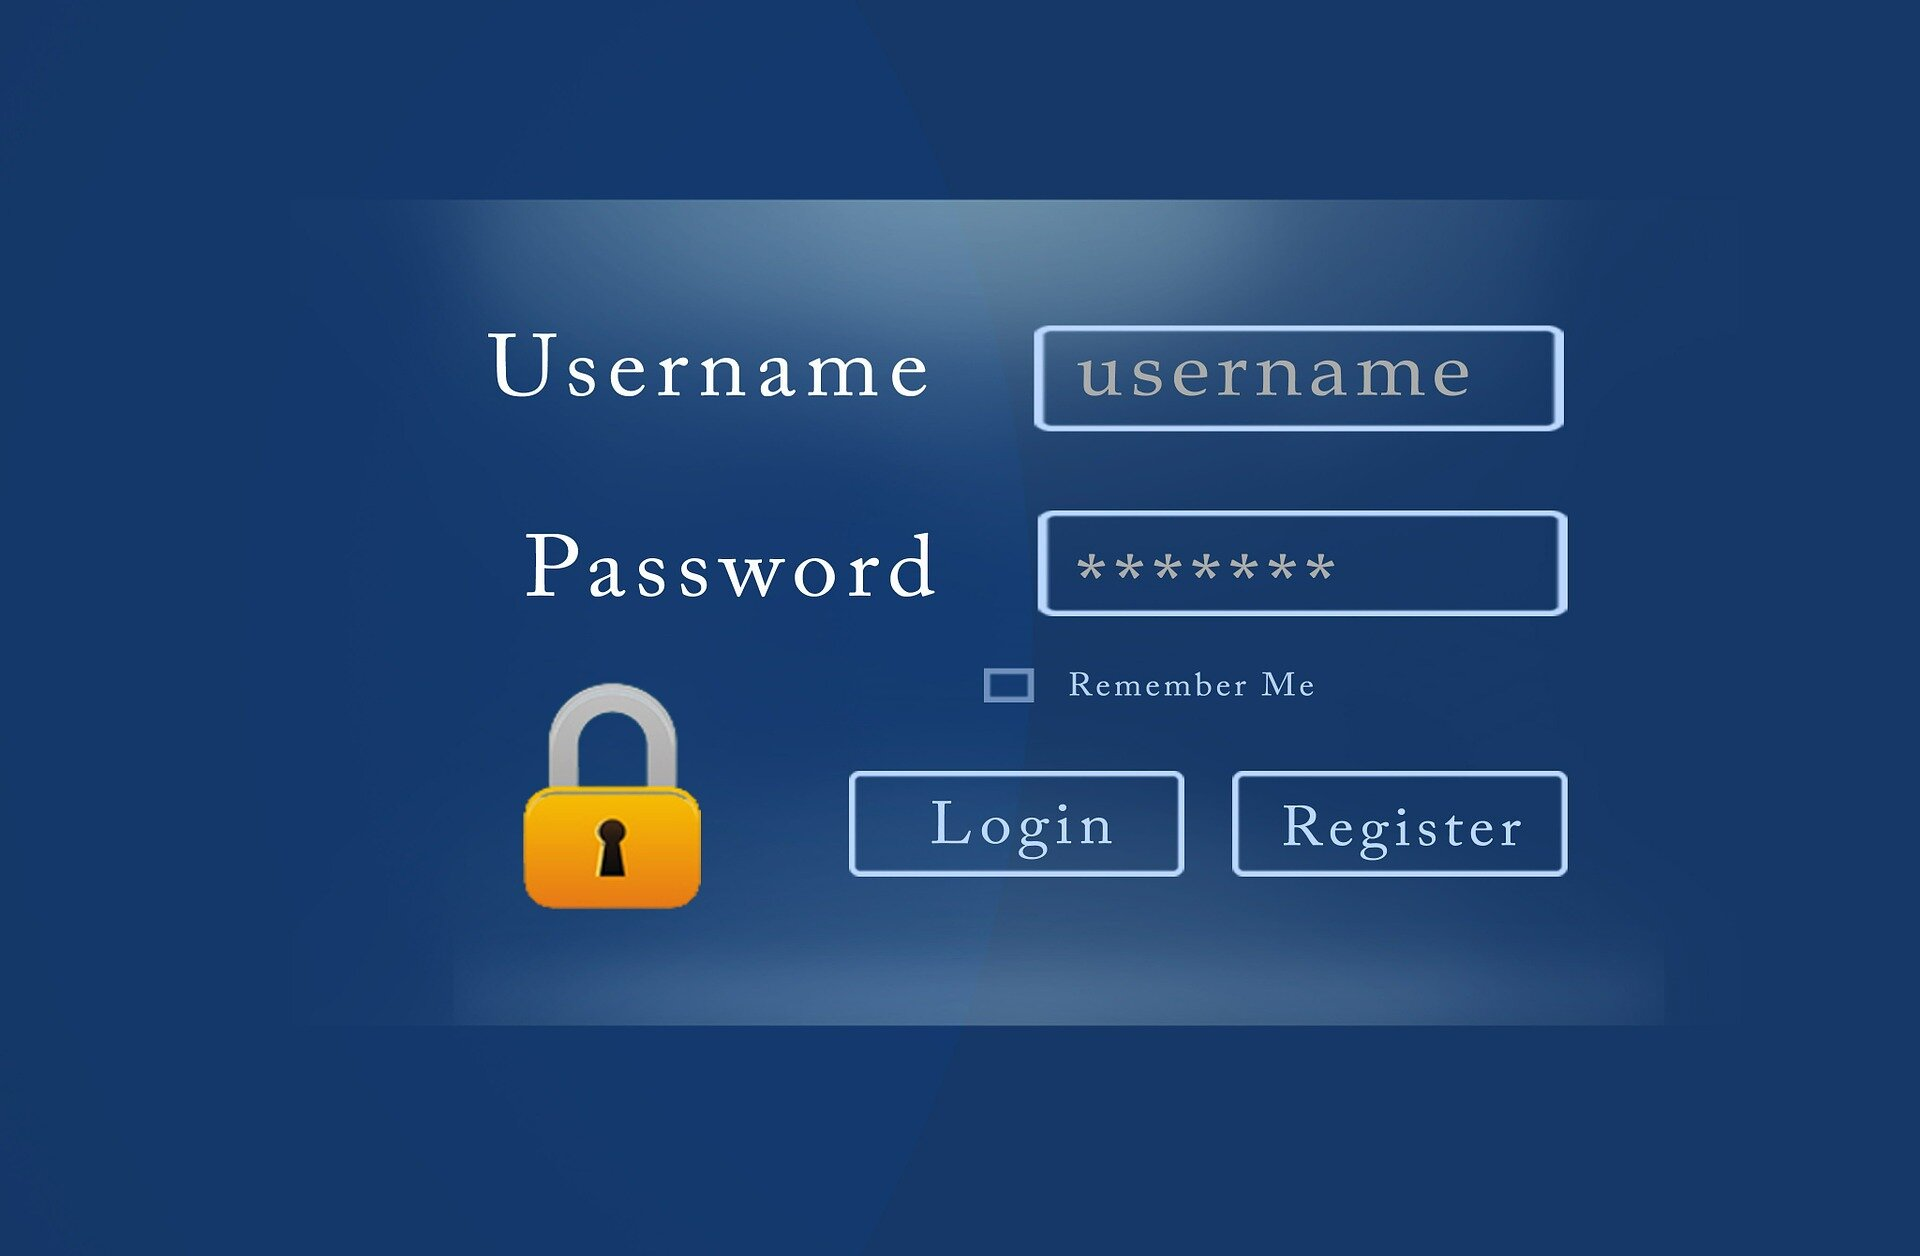 Researchers expose vulnerabilities of password managers